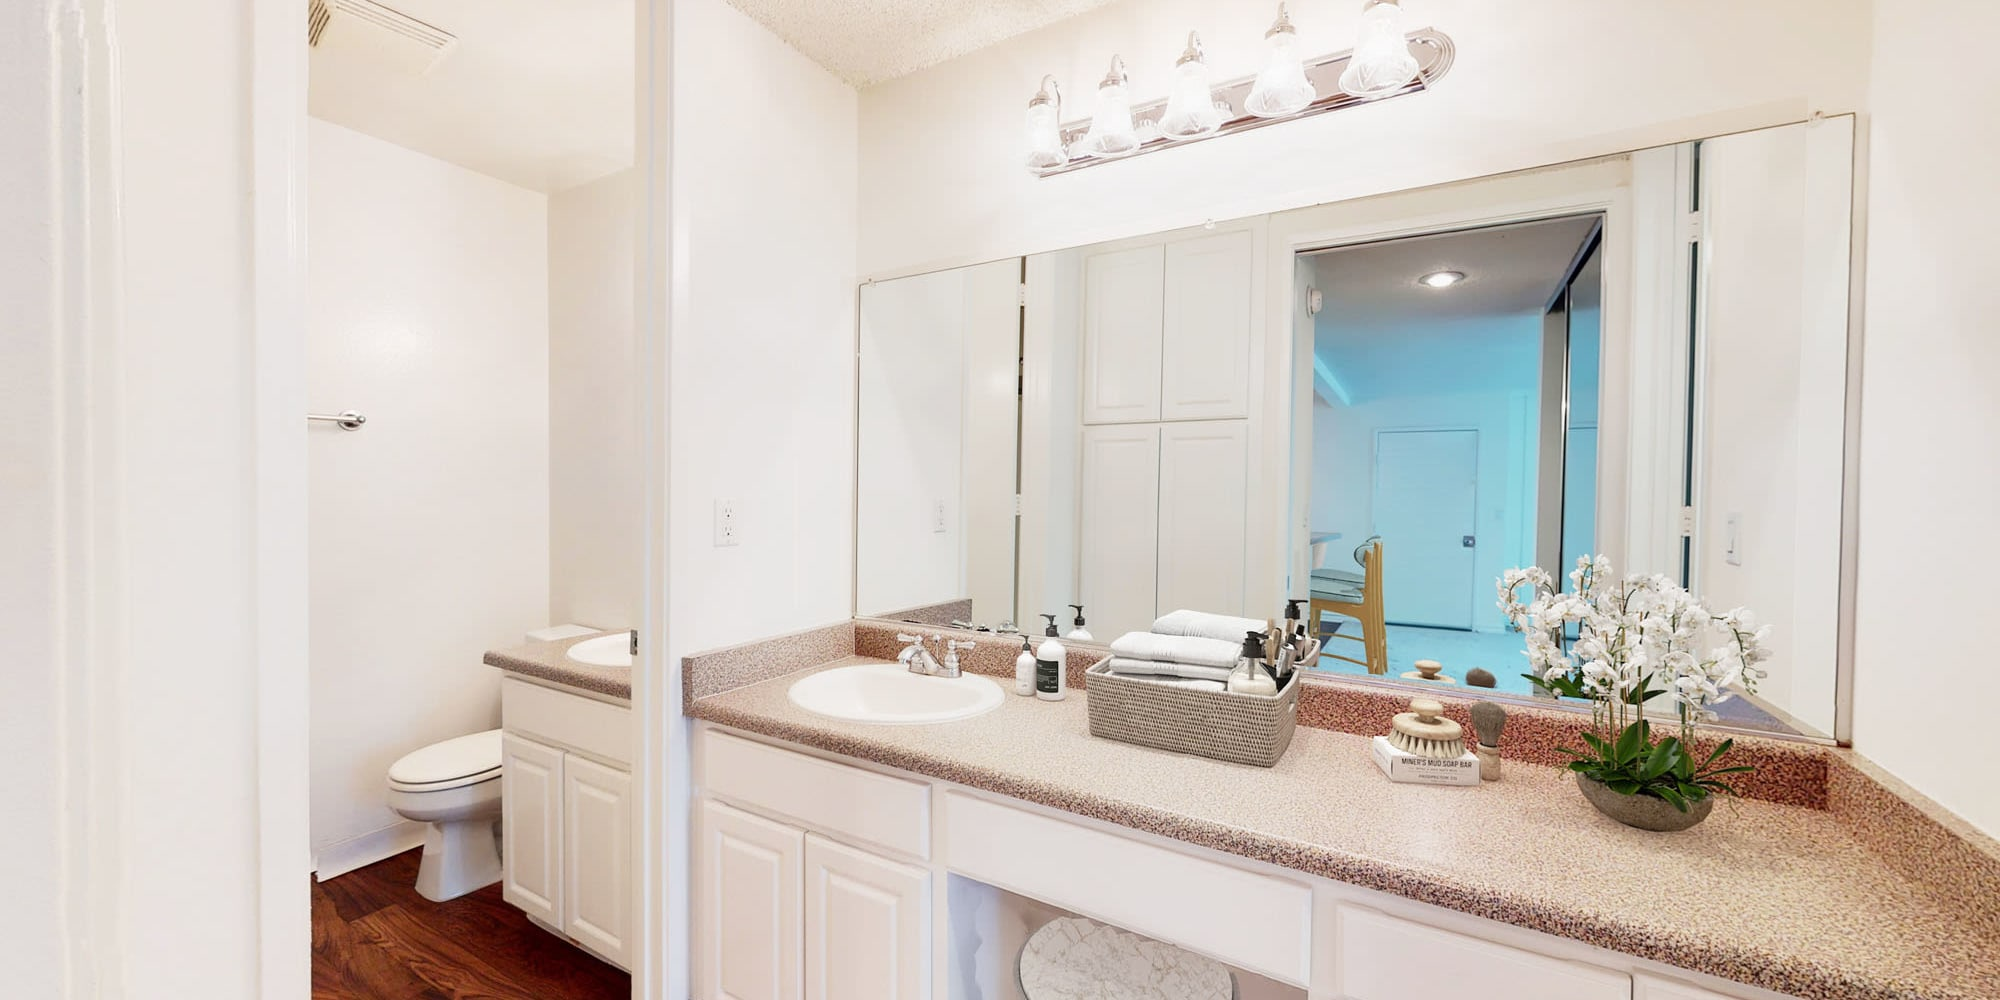 Well-lit bathroom with a large vanity mirror in a model home at Mariners Village in Marina del Rey, California